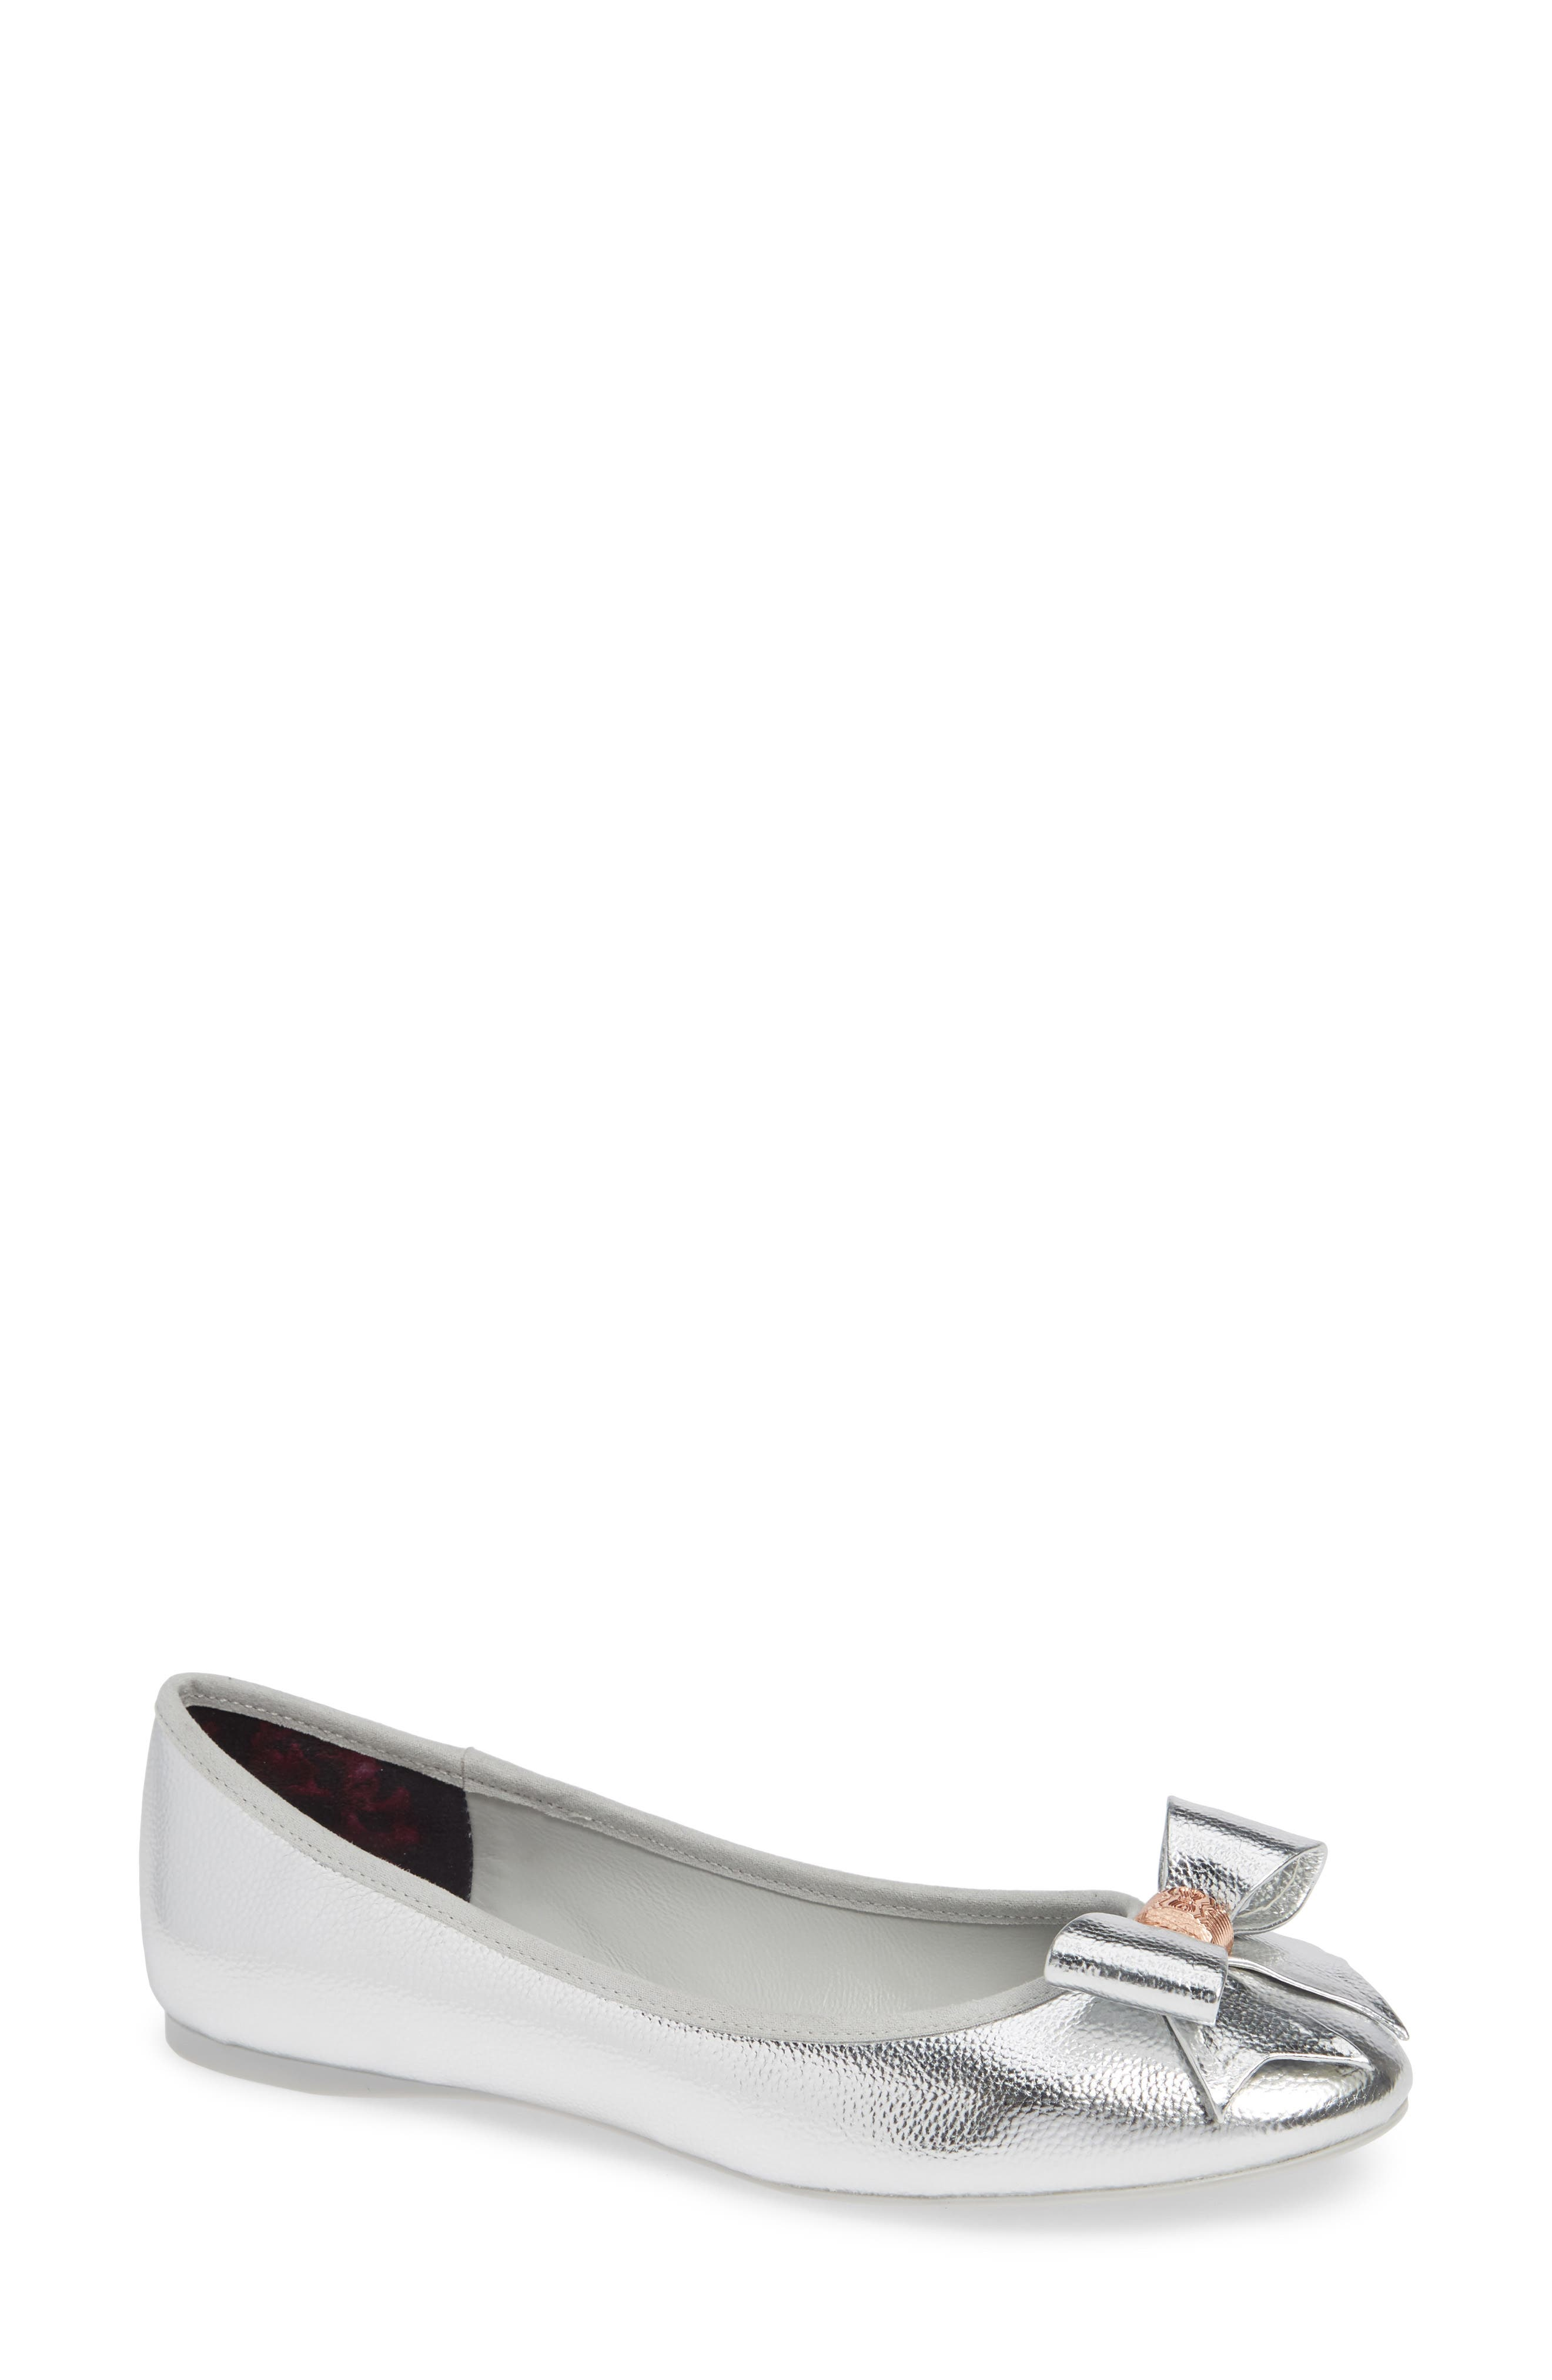 TED BAKER Women'S Sually Ballet Flats in Silver